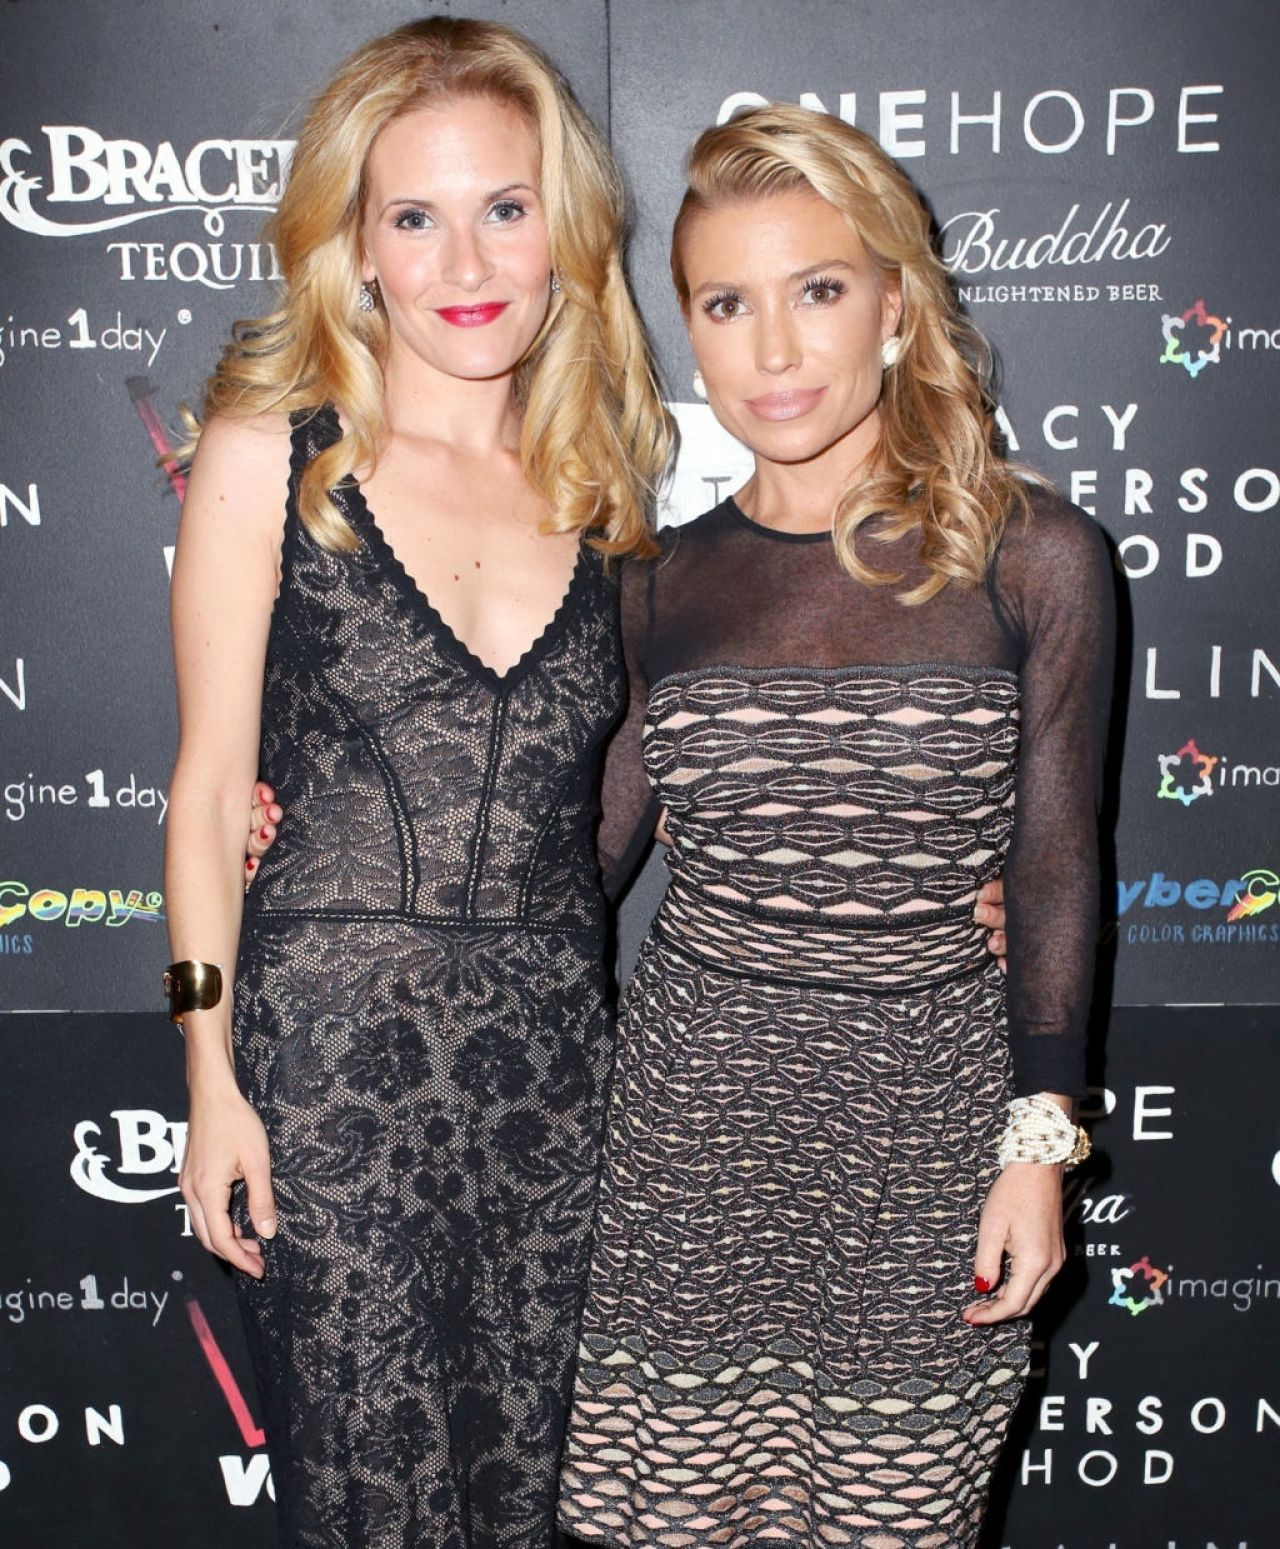 Sally Pressman - imagine1day Annual Gala Honoring Tracy Anderson - November 2014